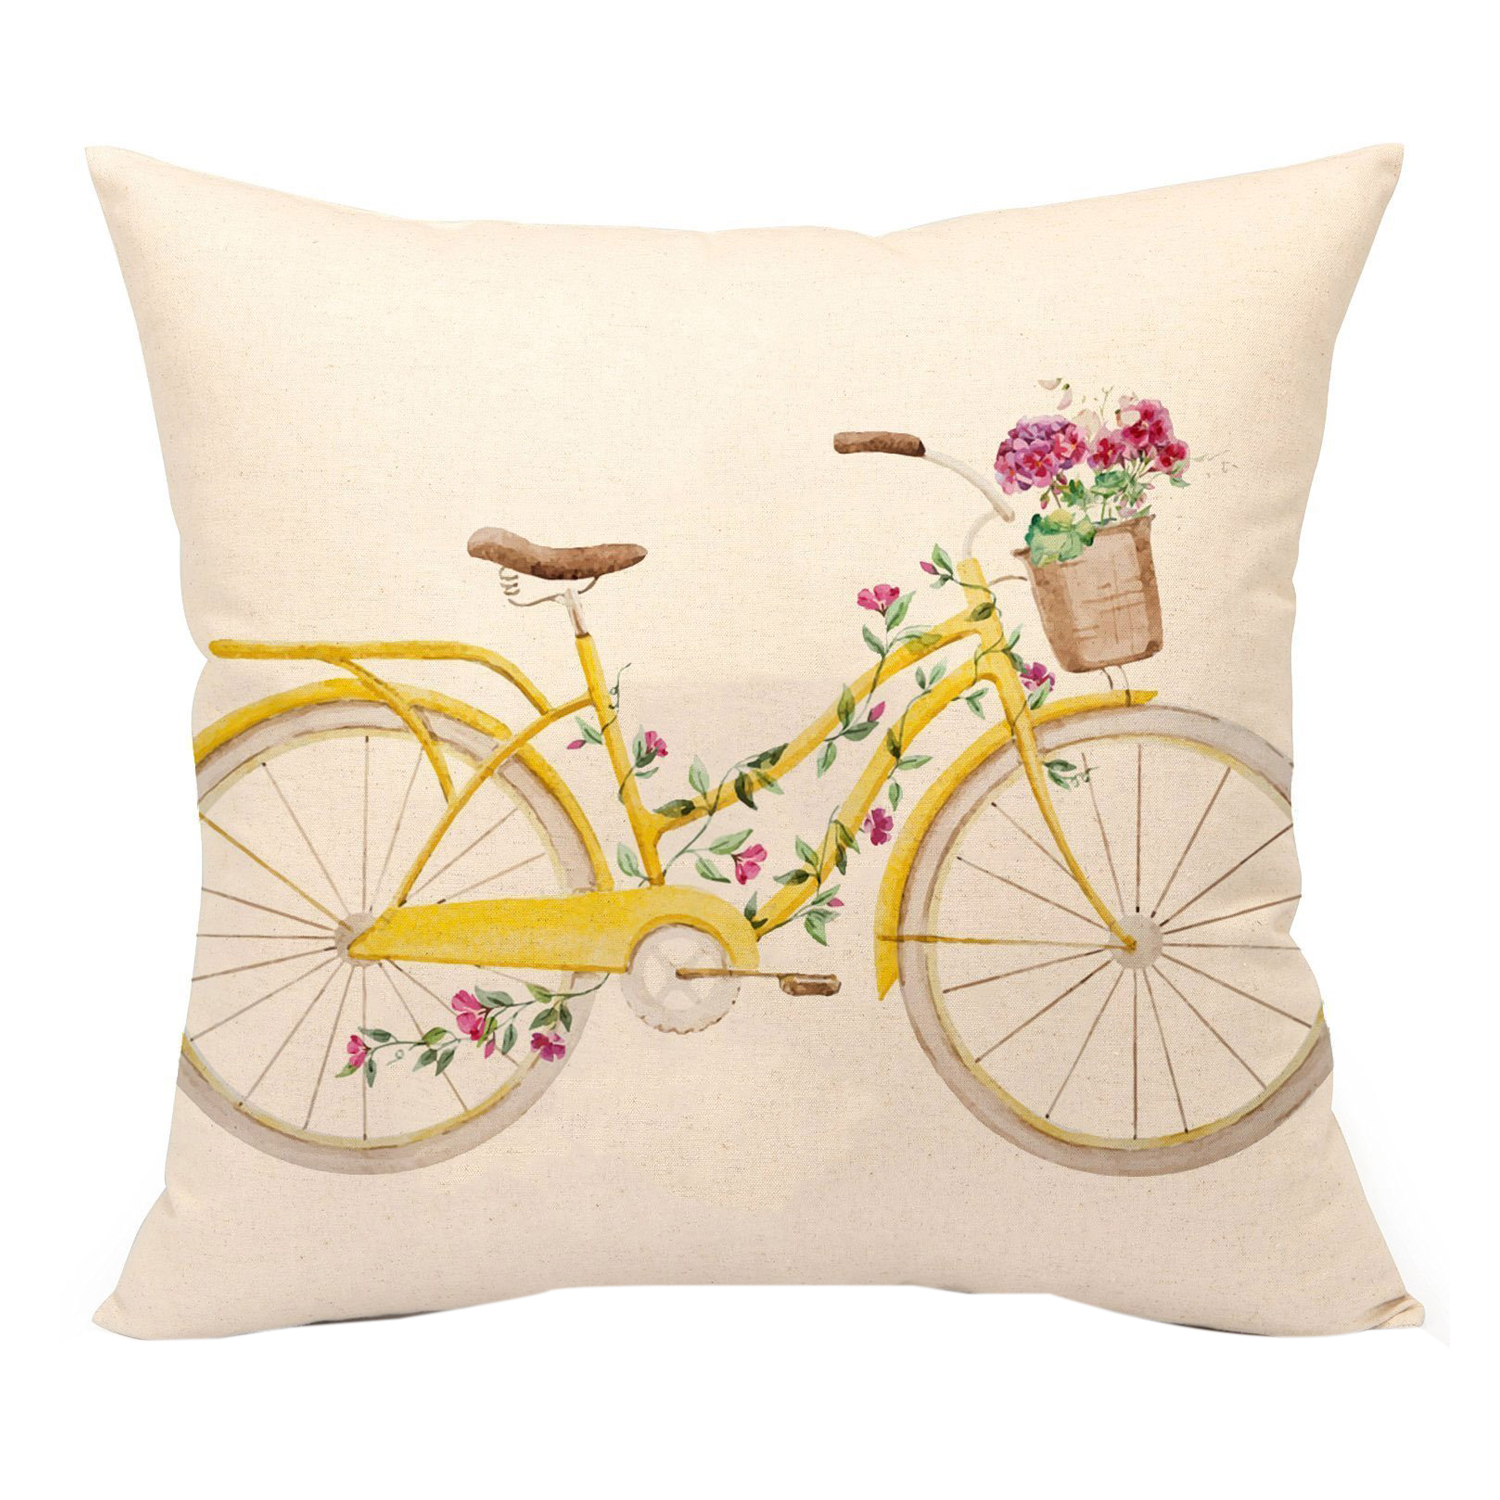 Yellow Bicycle Throw Pillow Cover Vintage Home Decorative Cushion Case 18 x 18 Inch Linen for Sofa (Flower)